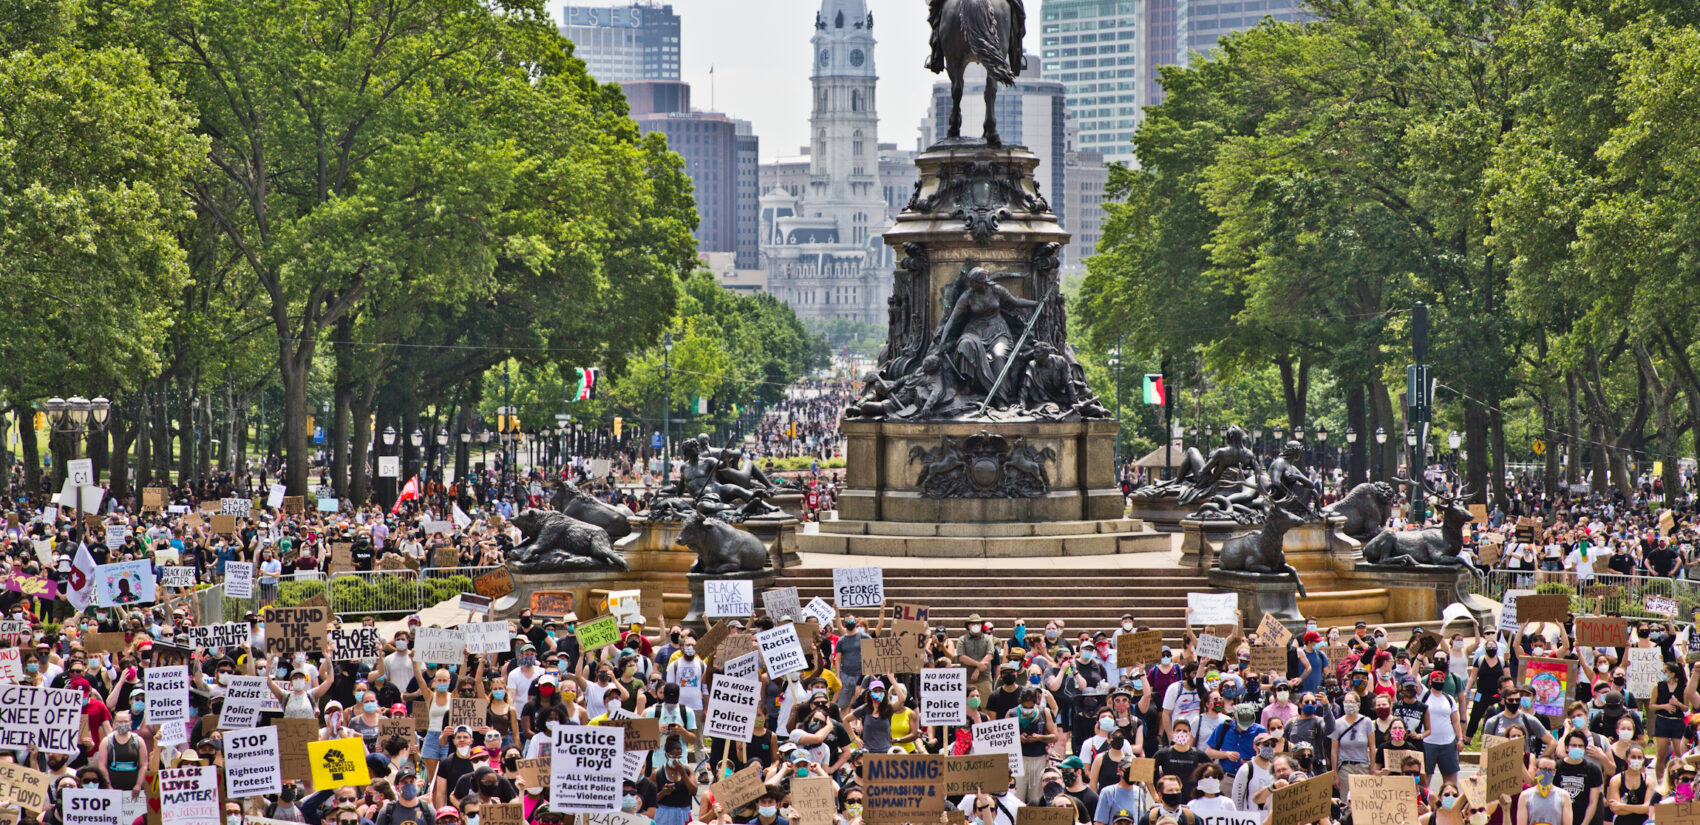 Protesters take over the Benjamin Franklin Parkway